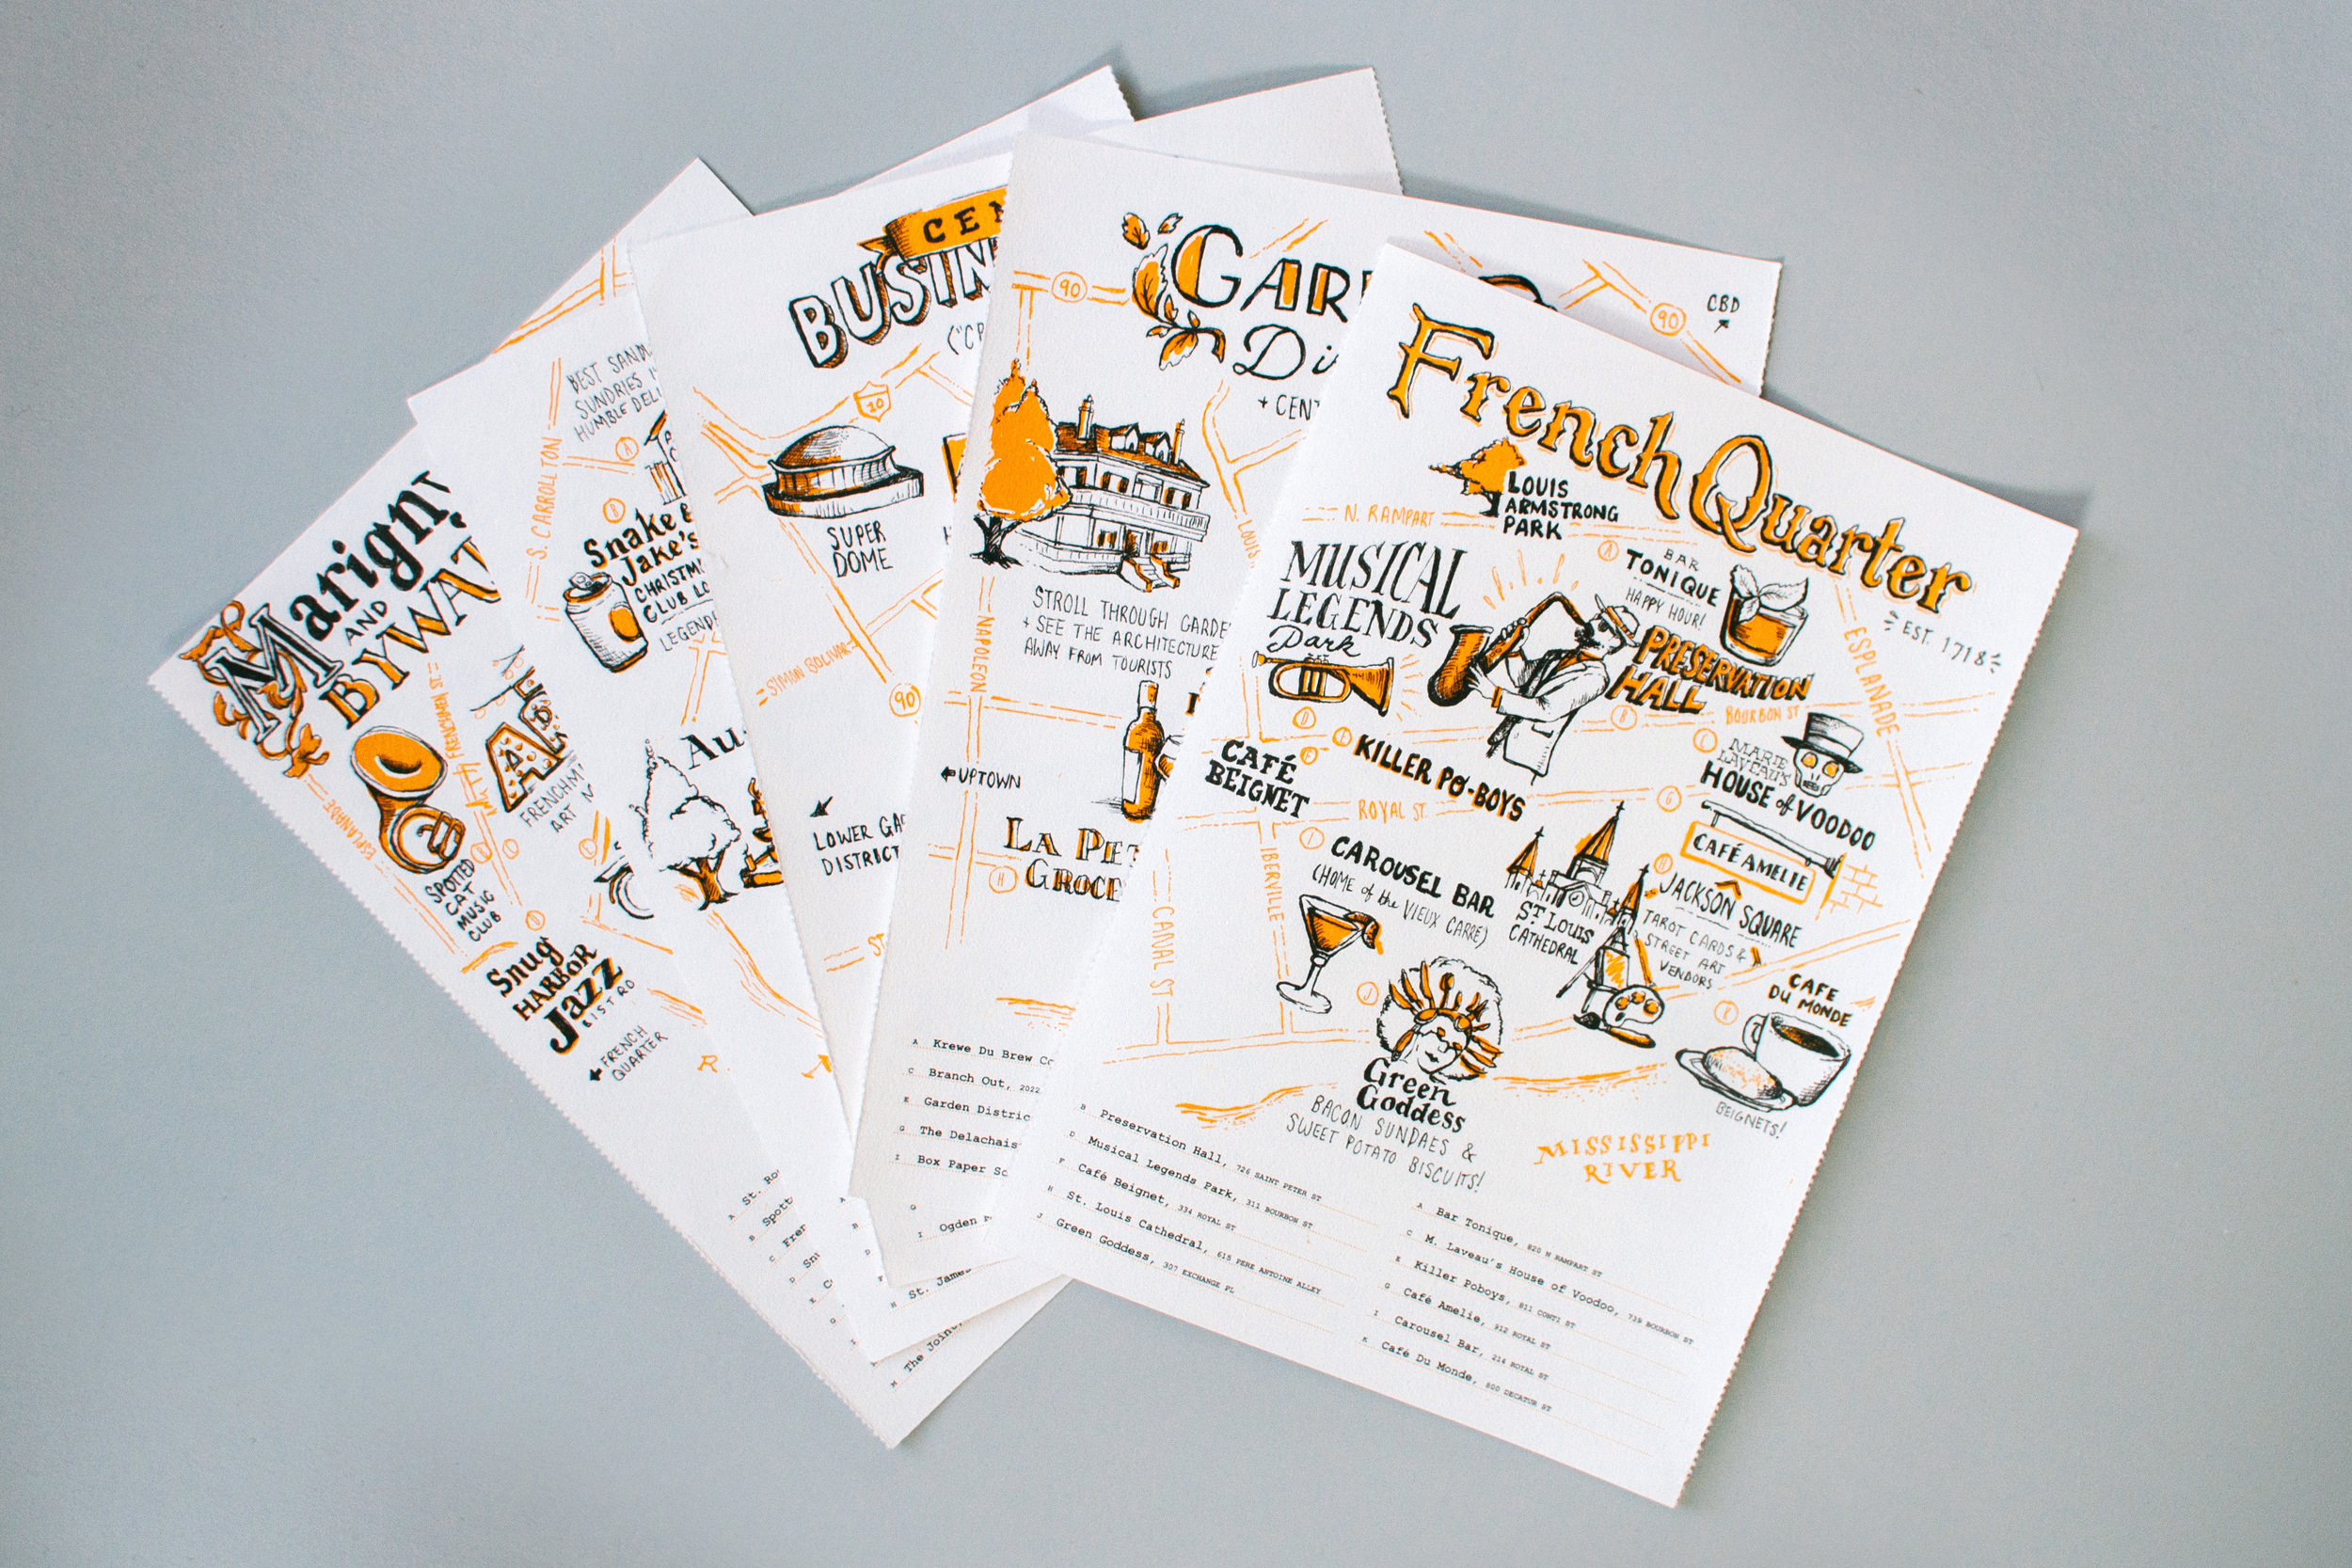 All of the New Orleans with Neenah Paper illustrated neighborhood guides separated as individual prints are fanned out on top of each other. On top is the French Quarter.